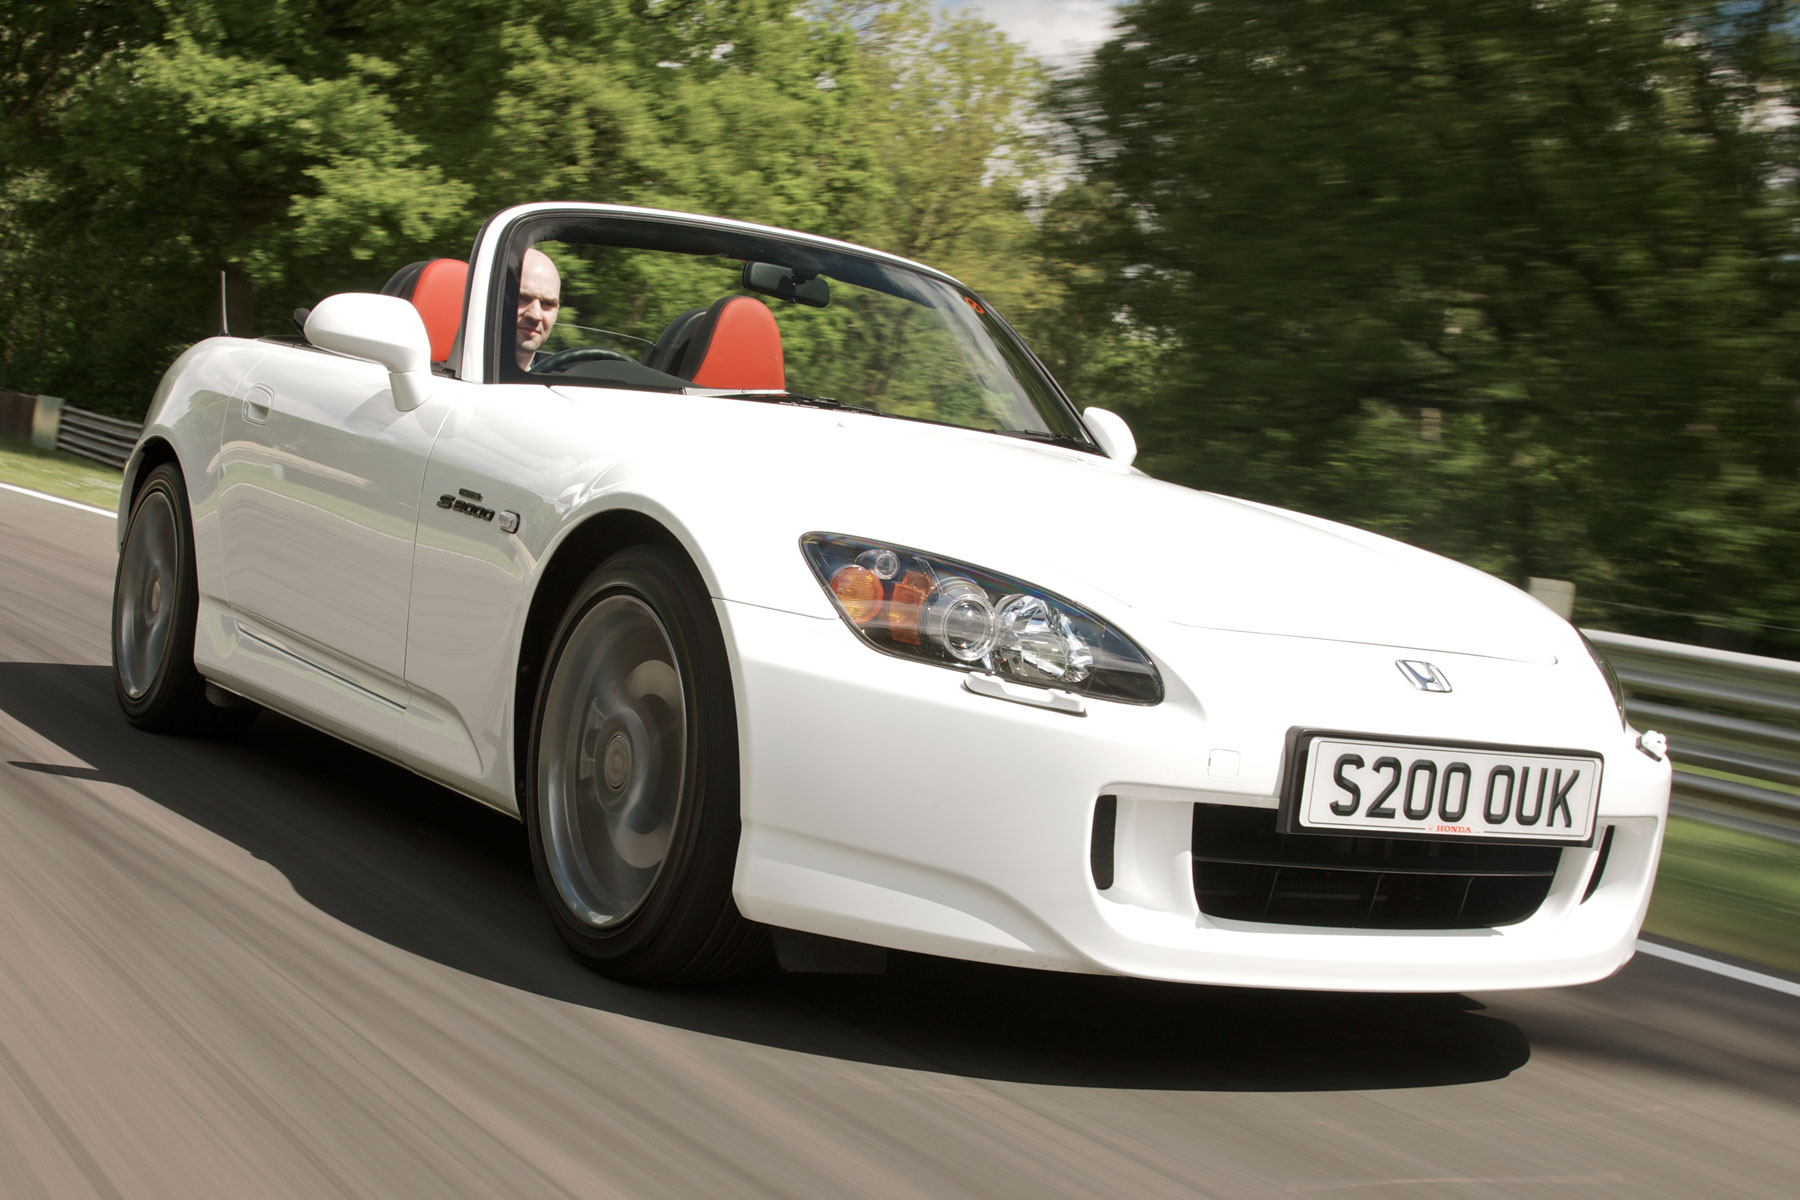 Honda S2000 Review: A Future Classic That Revs To 9,000rpm